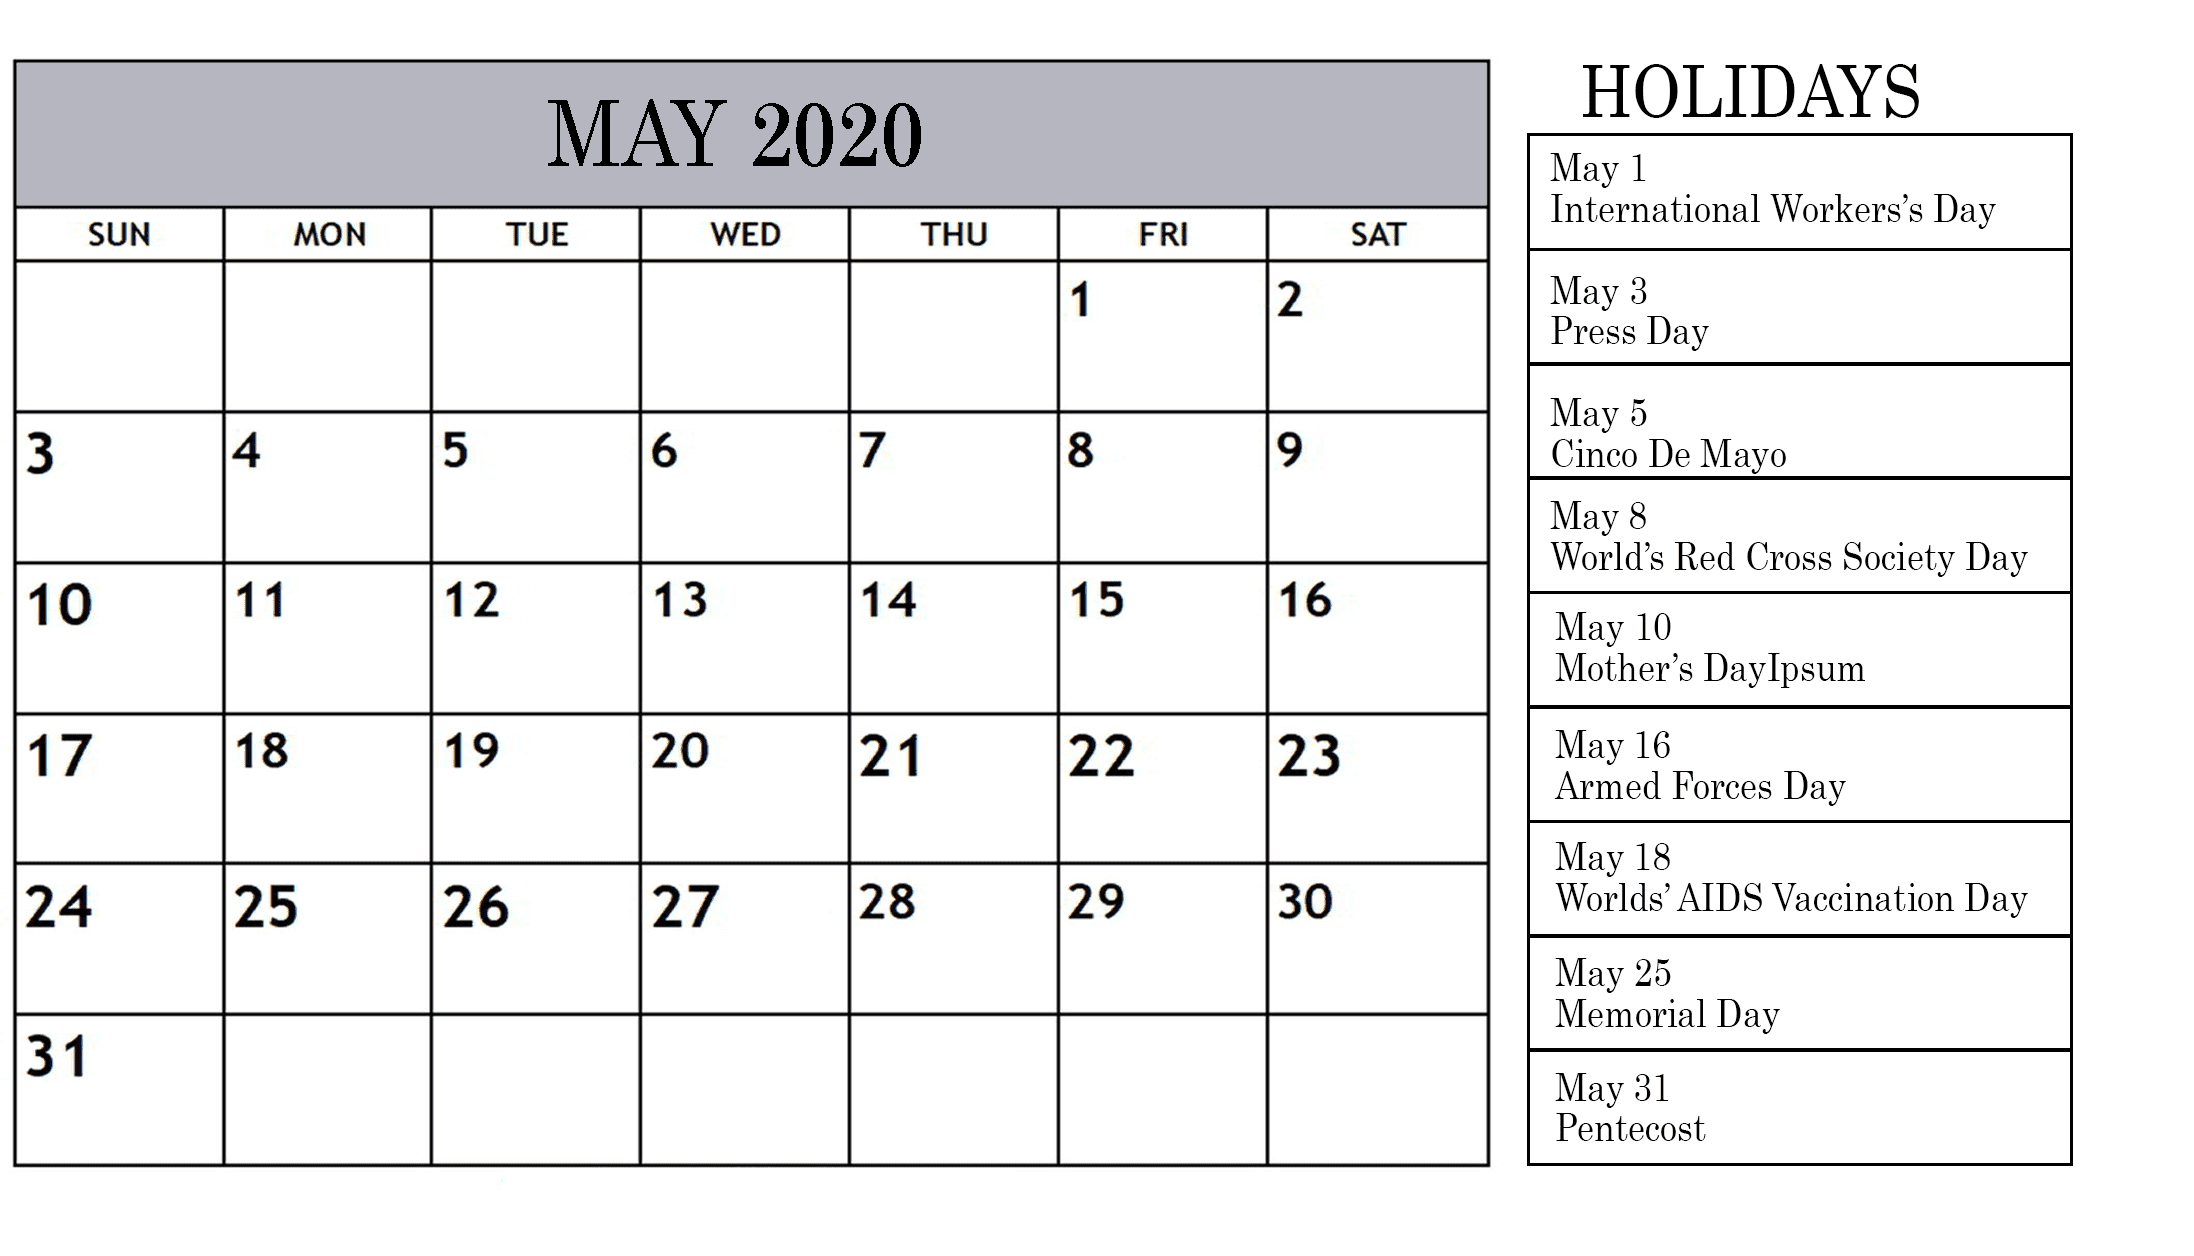 Holidays Calendar For May 2020